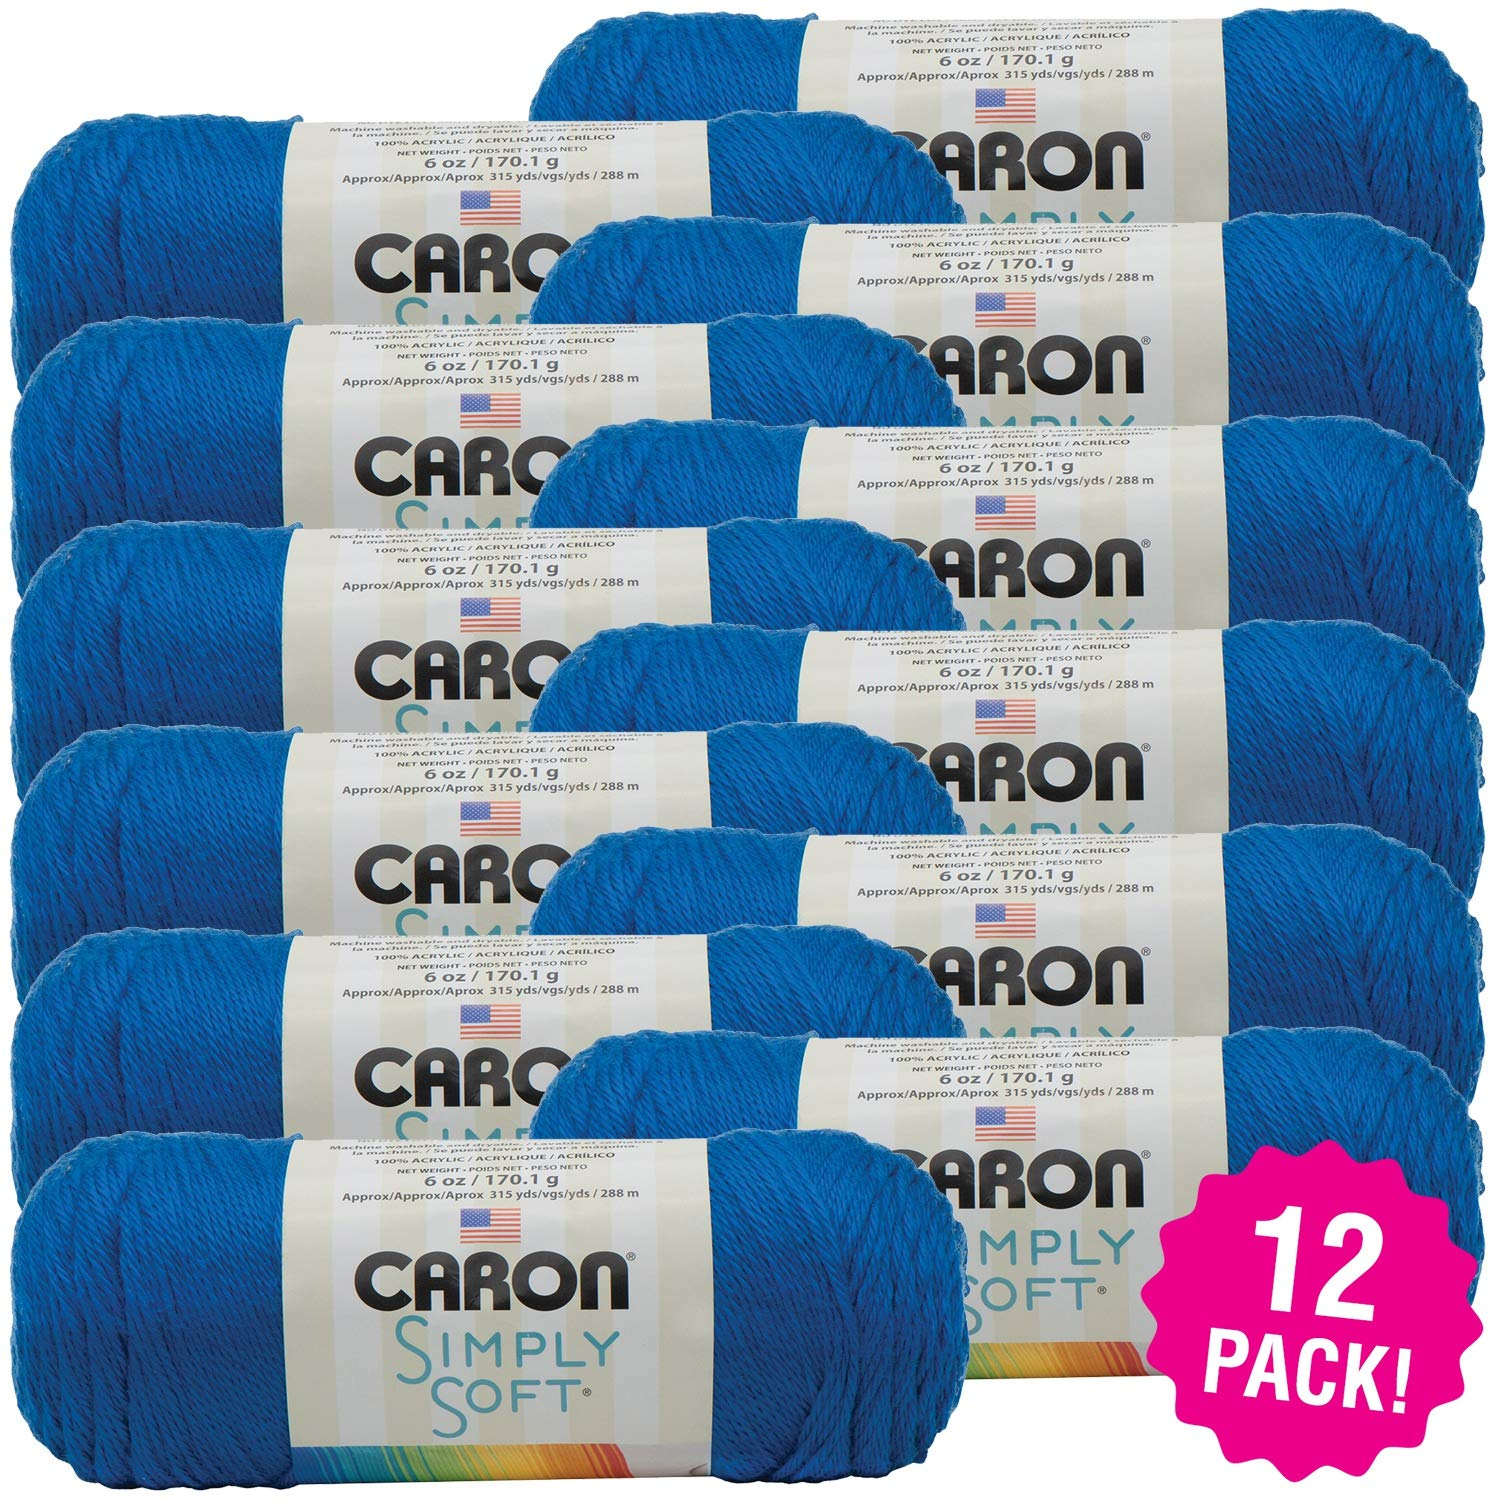 Caron 98058 Simply Soft Solids Yarn-Royal Blue, Multipack of 12, Pack